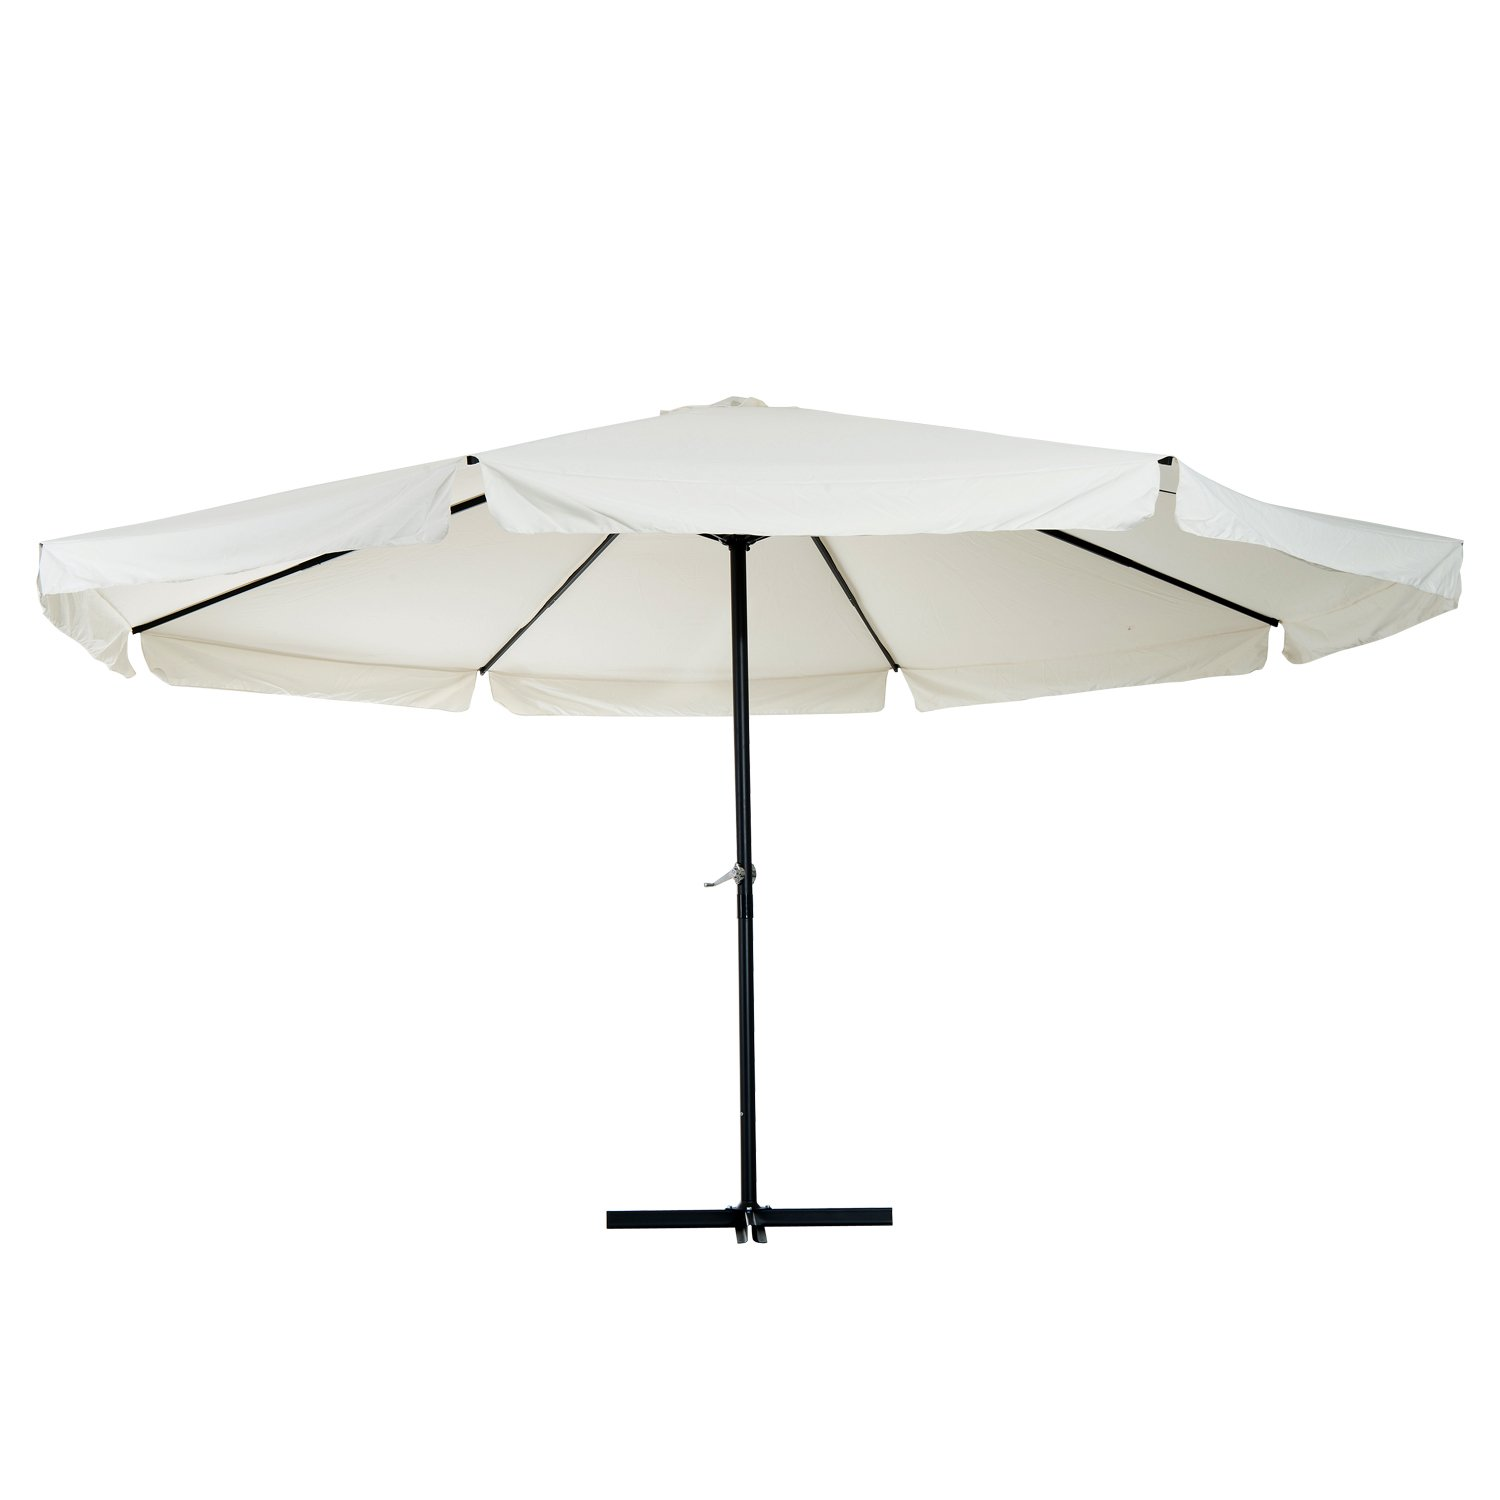 Outsunny 16' Oversize Aluminum Outdoor Patio Umbrella with Cross Base (Cream White) B0796RZGMZ